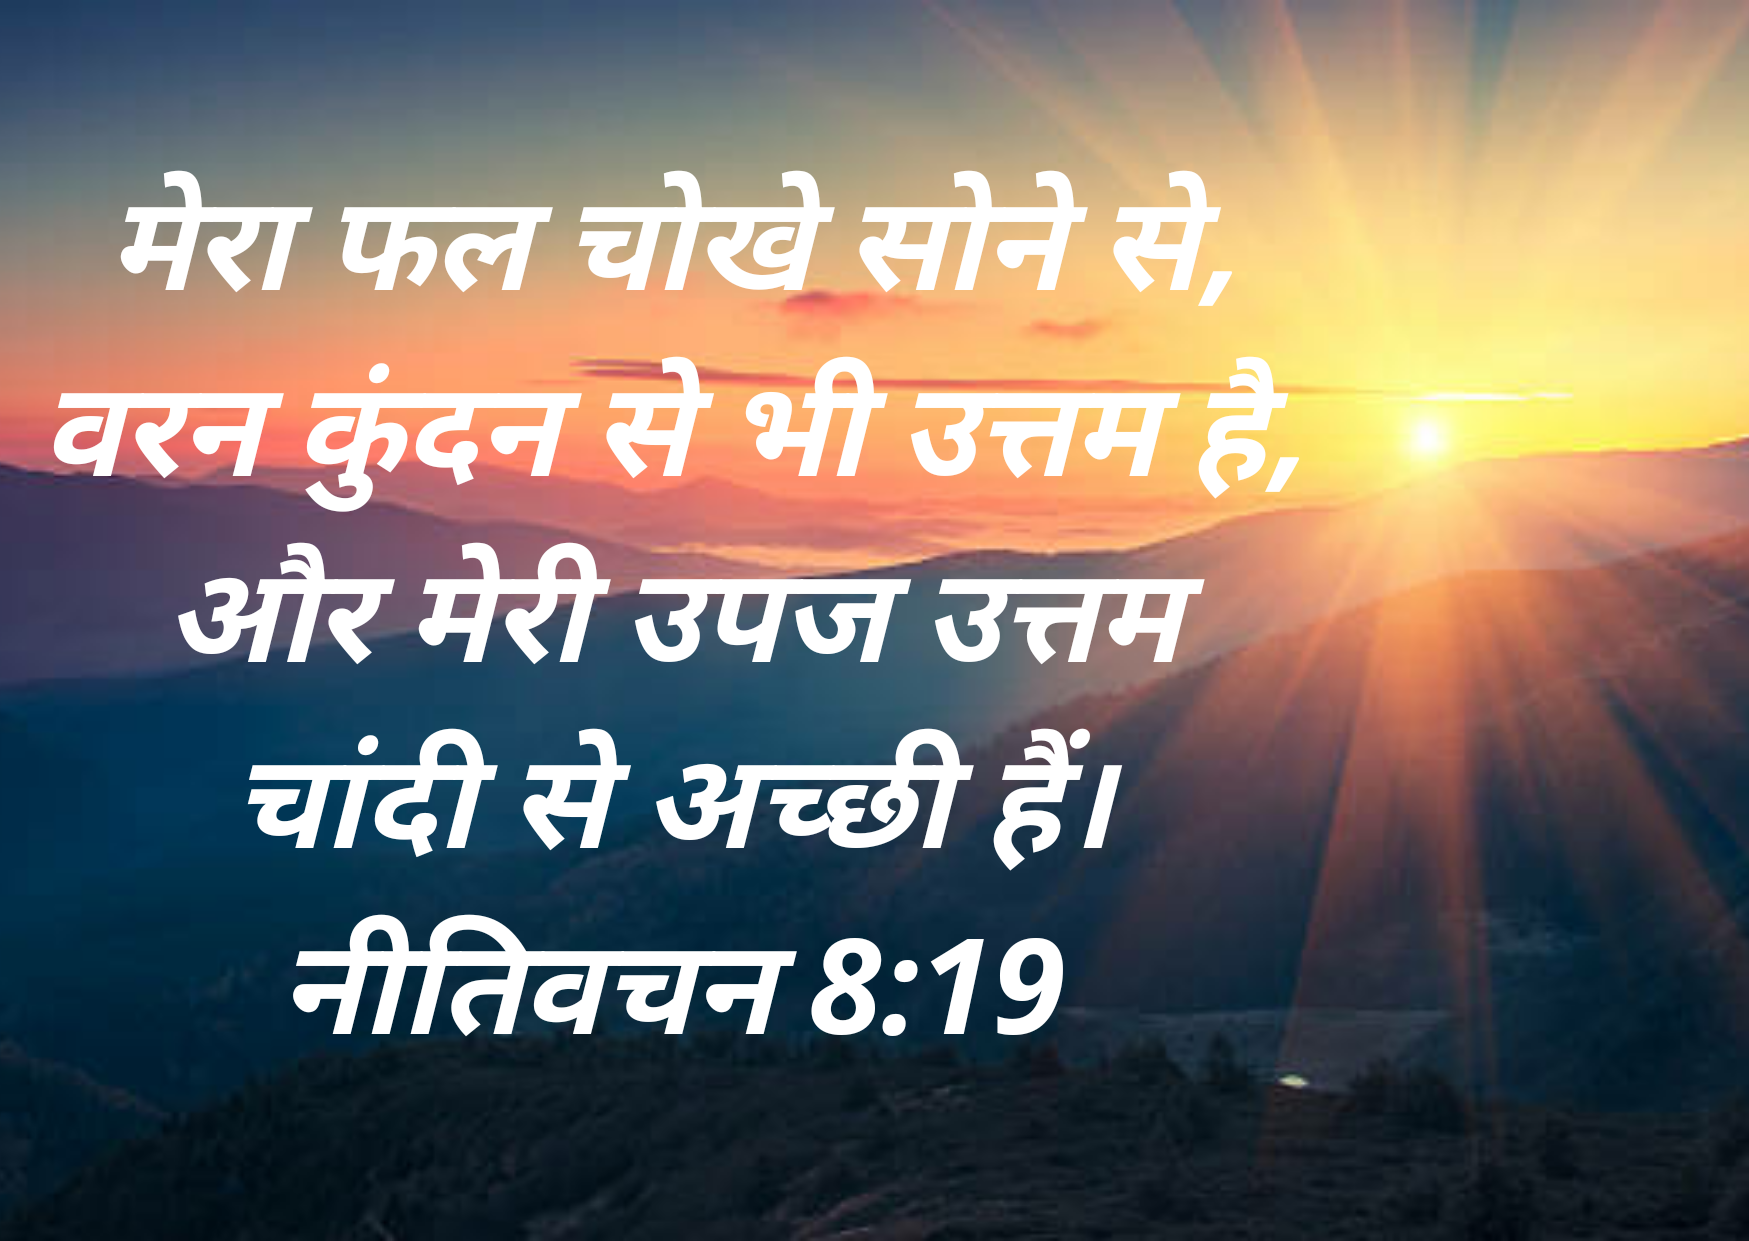 Bible verses in Hindi images, quotes, Inspirational words,